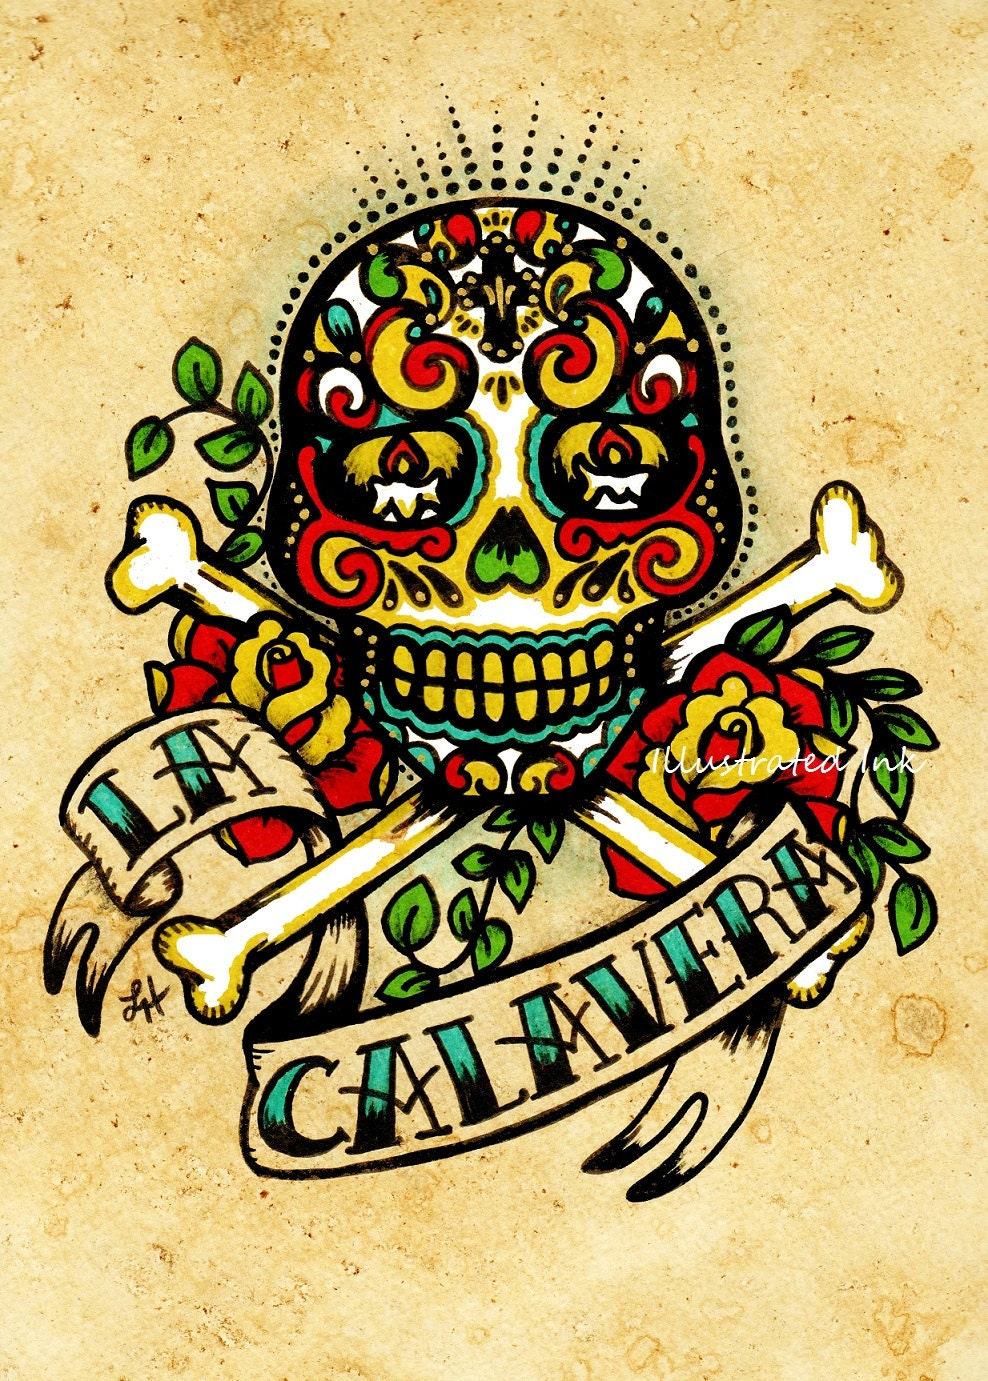 day of the dead sugar skull tattoo art la calavera loteria. Black Bedroom Furniture Sets. Home Design Ideas